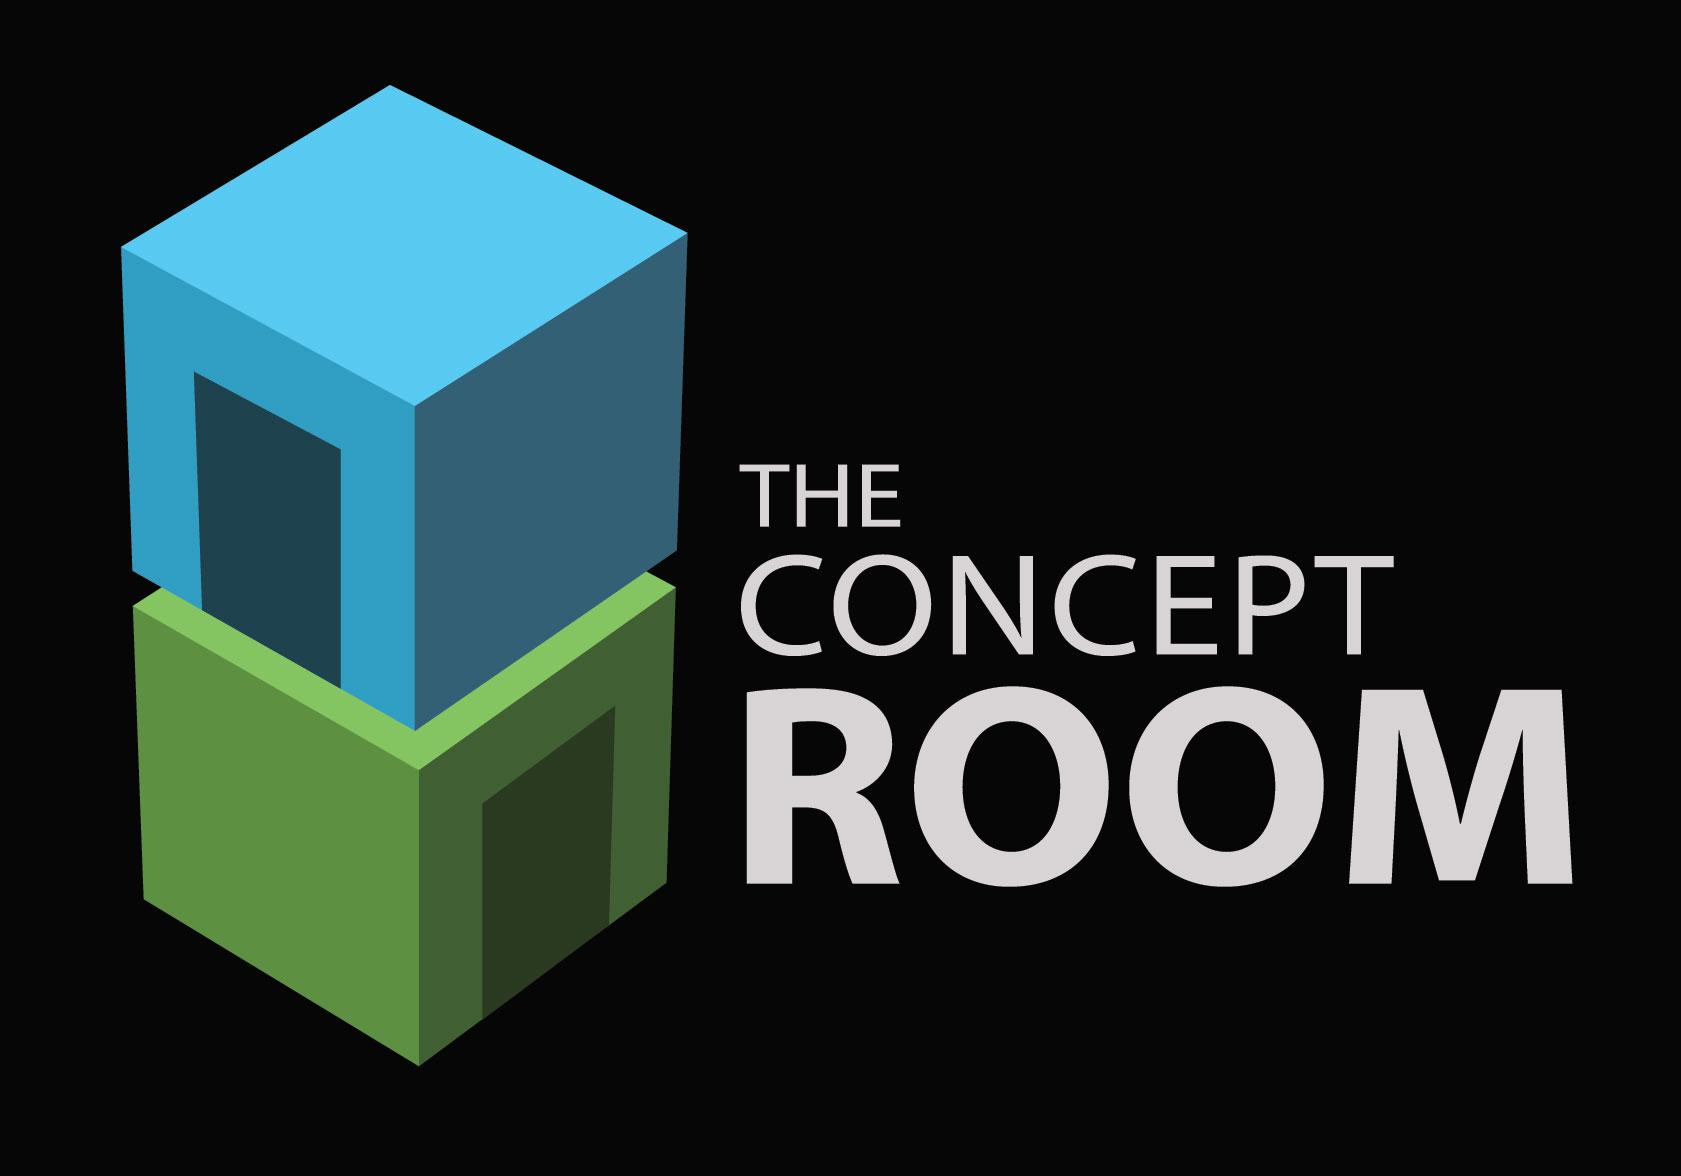 The Concept Room